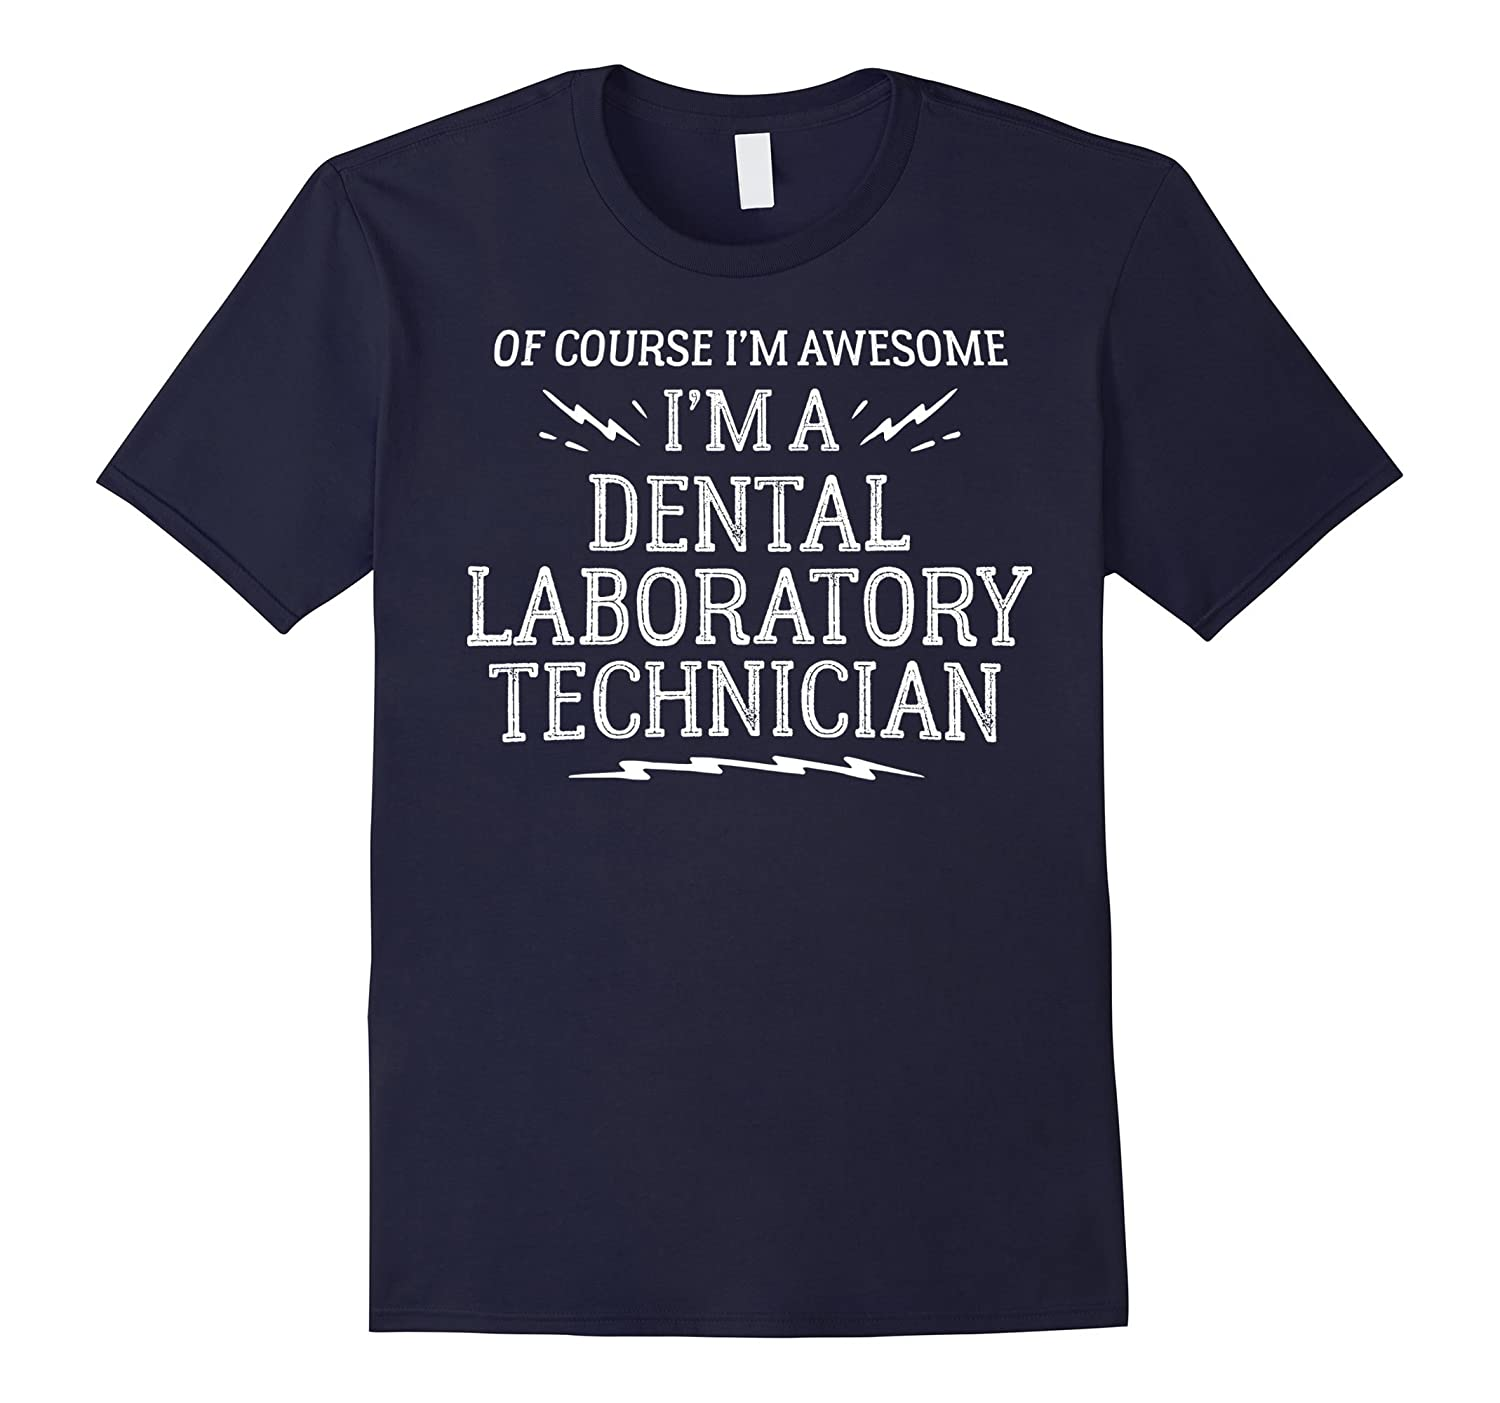 Dental Laboratory Technician Work T-Shirt - Of Course Im Aw-TJ